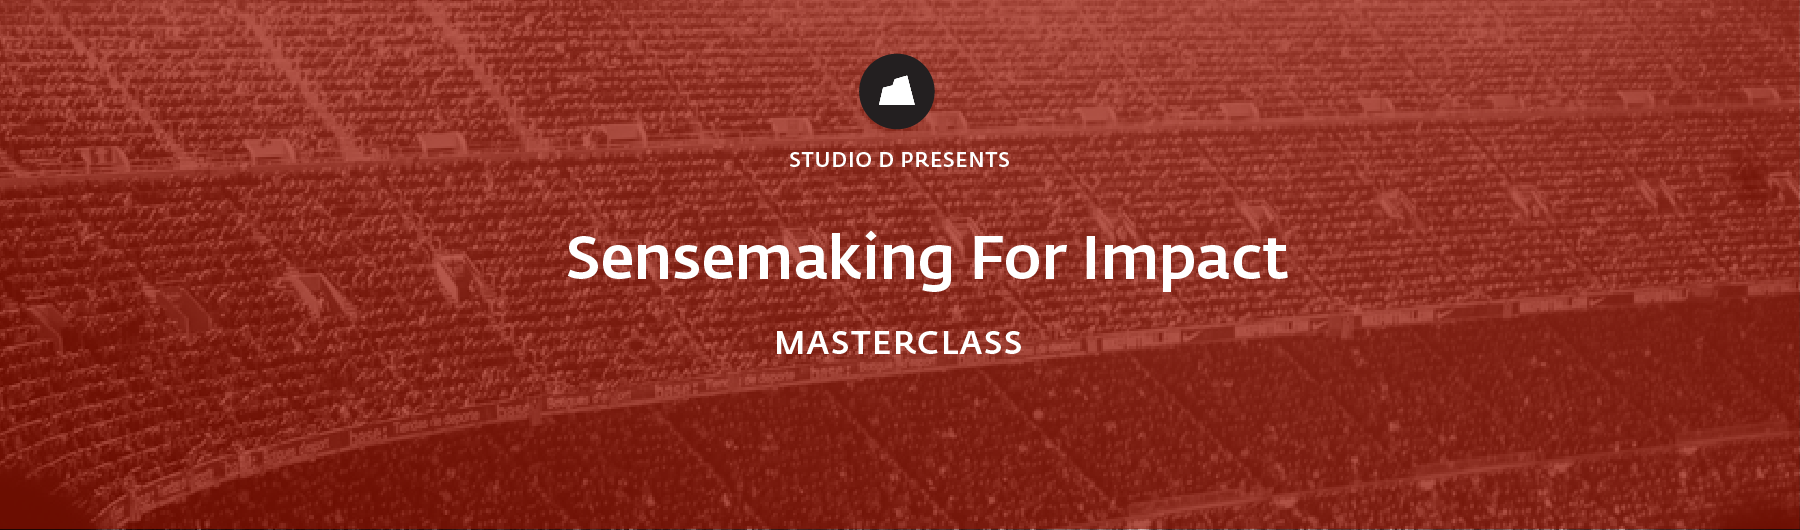 Sensemaking For Impact Masterclass, 9 April 2020, London